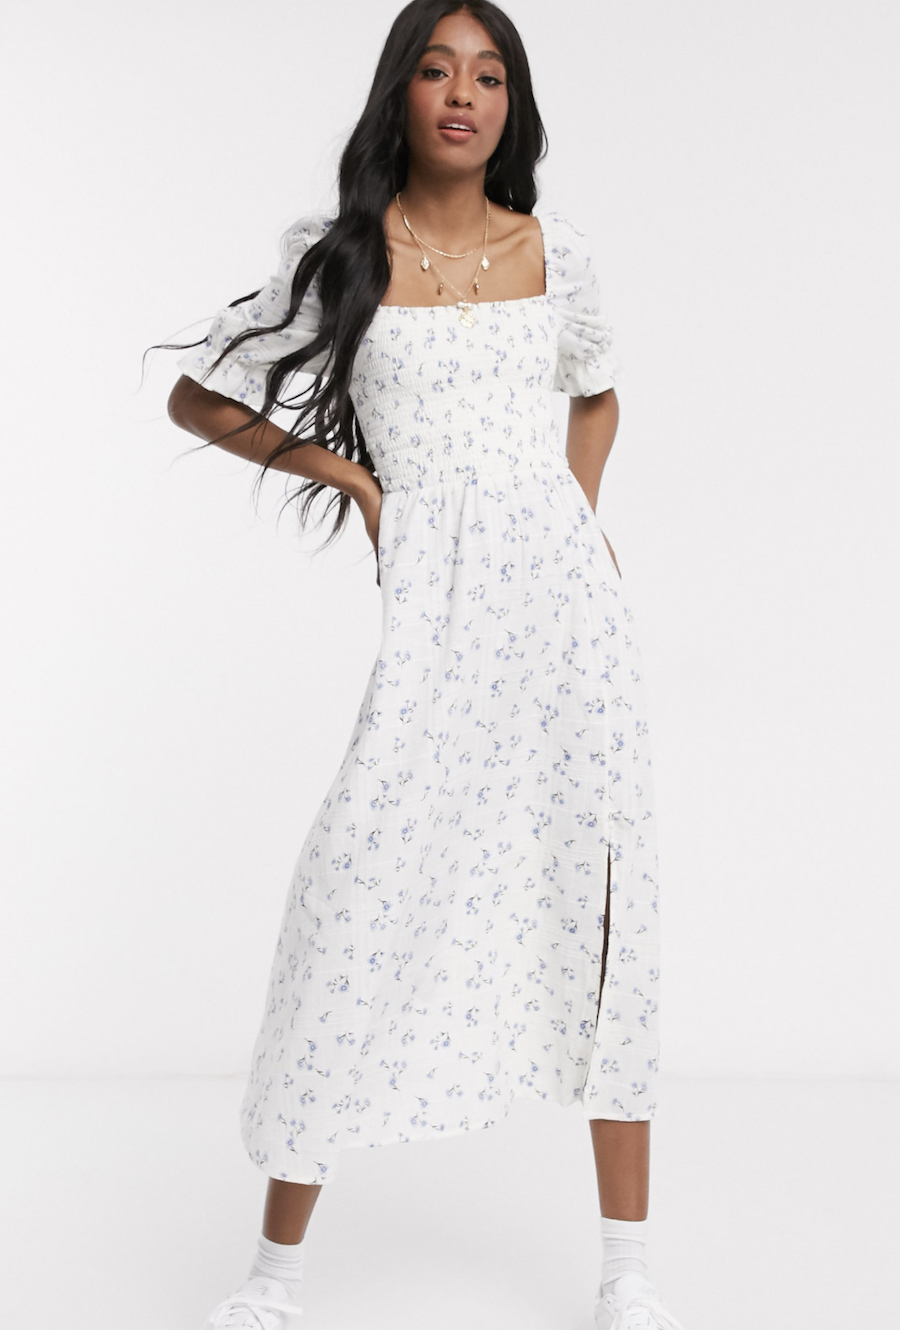 Midi dress with gathered top and puffed checkered sleeves by New Look